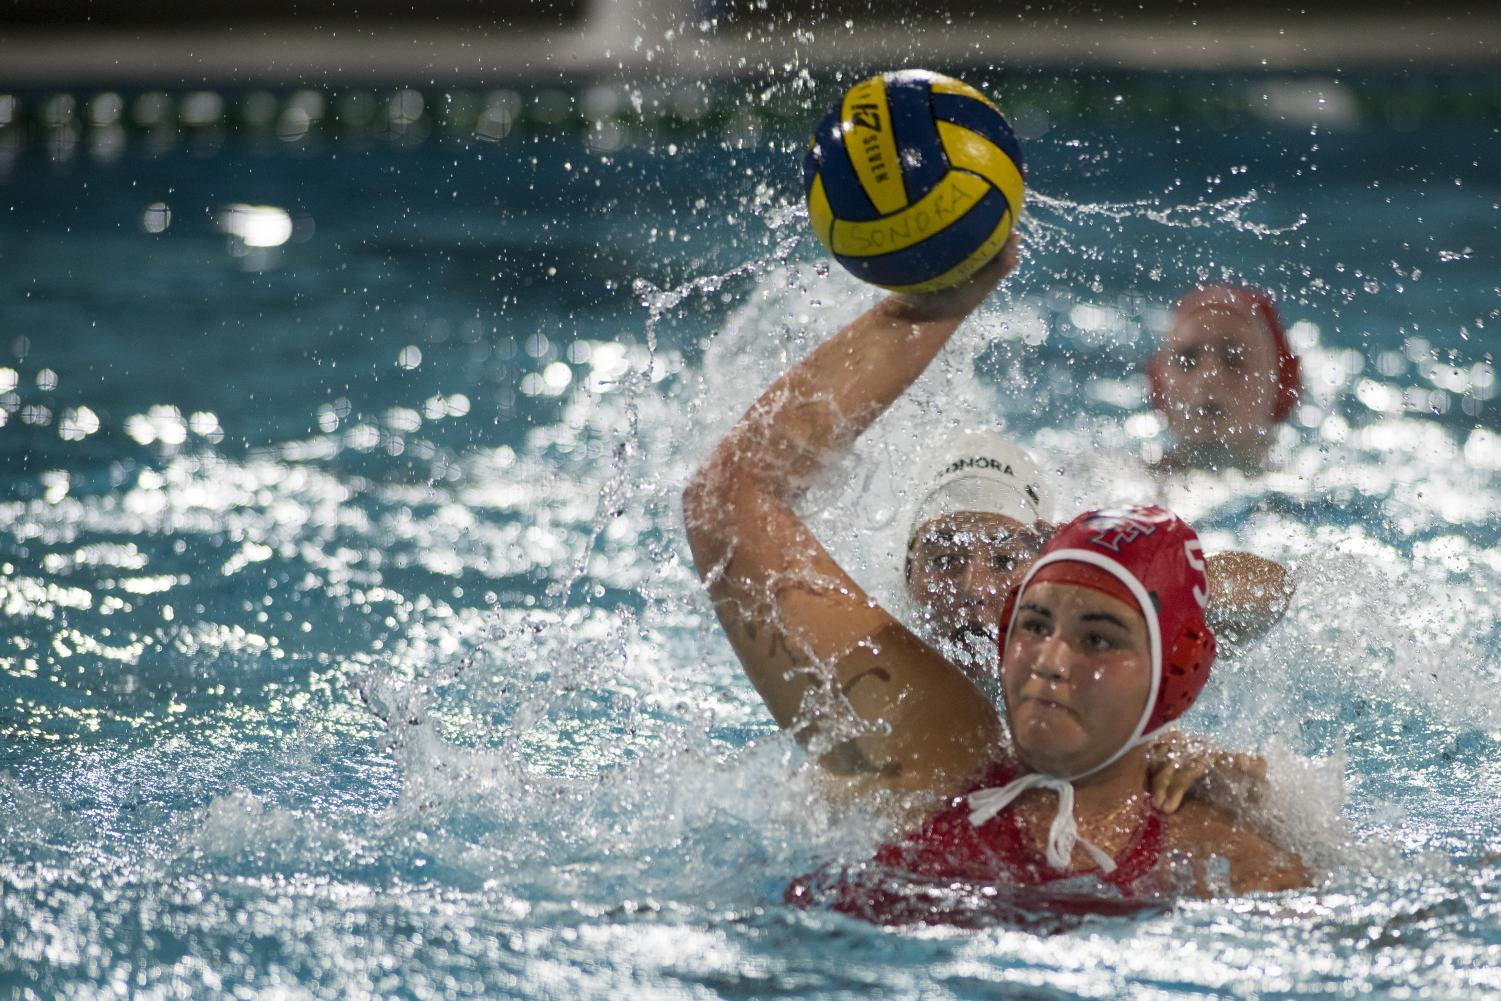 Senior Kaya Ortega passes the ball. Photo courtesy of Brian Crowe.